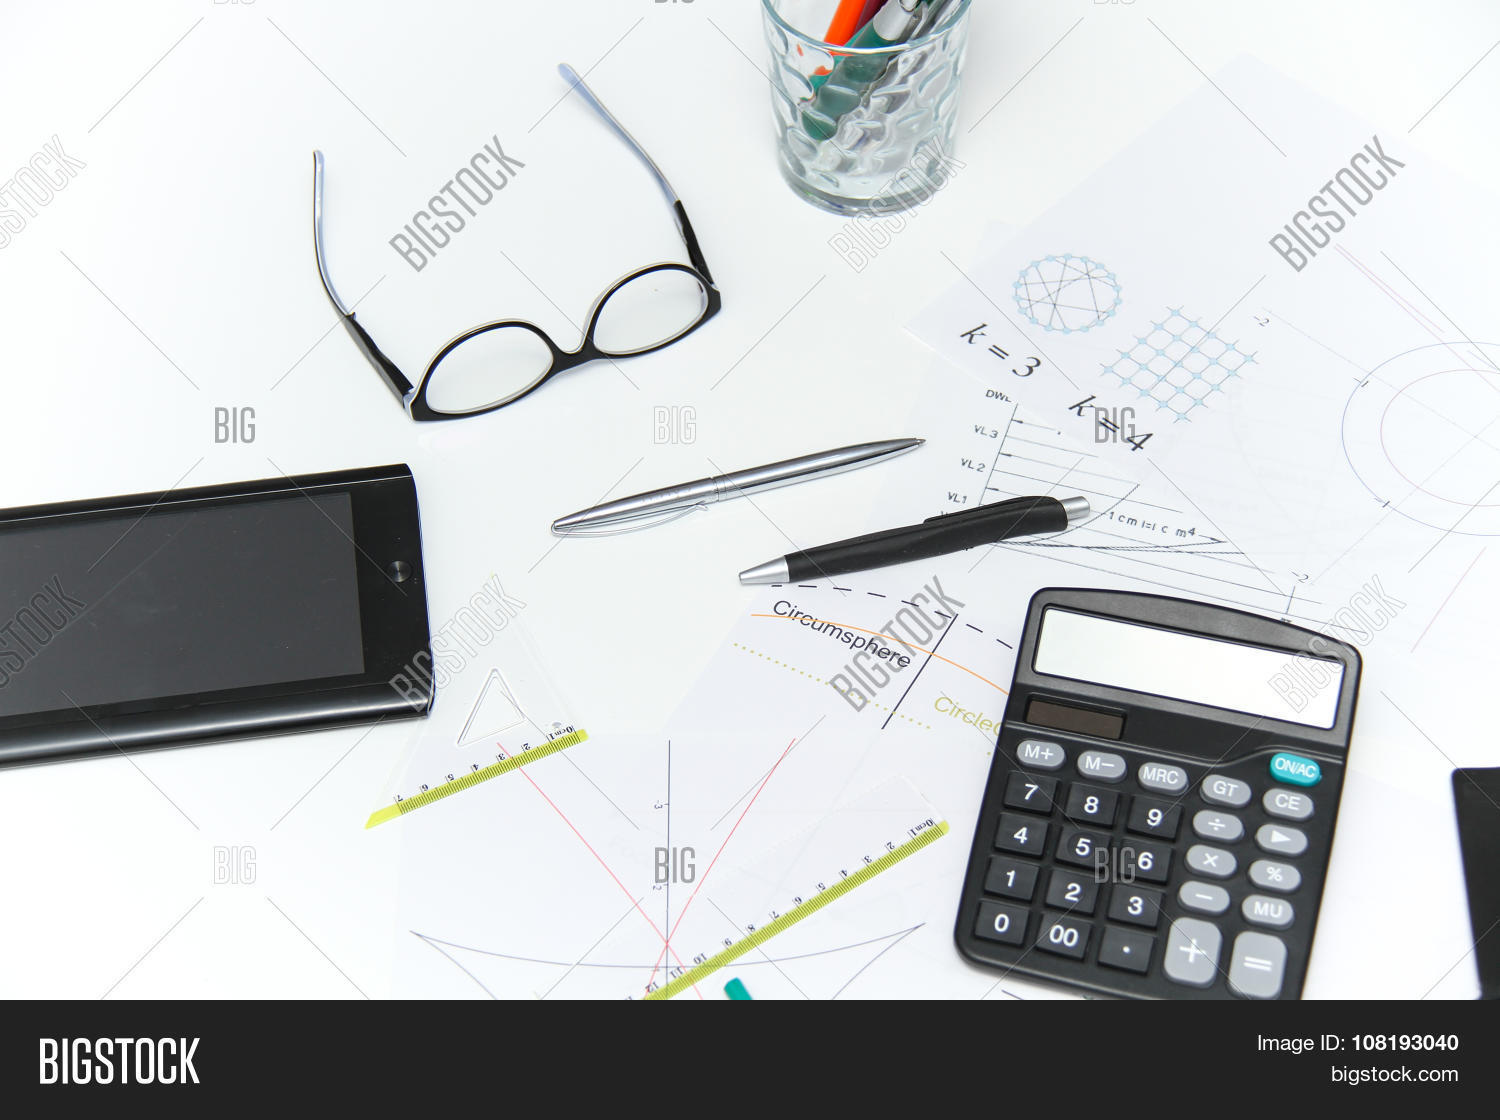 architect,architectural,architecture,blueprint,built,calculator,calipers,construction,design,designer,drawing,engineering,glasses,home,house,idea,measurements,paper,pencil,performance,plan,plotter,print,project,protractor,reconstruction,renovation,repair,ruler,structural,structure,symbols,tablet,tools